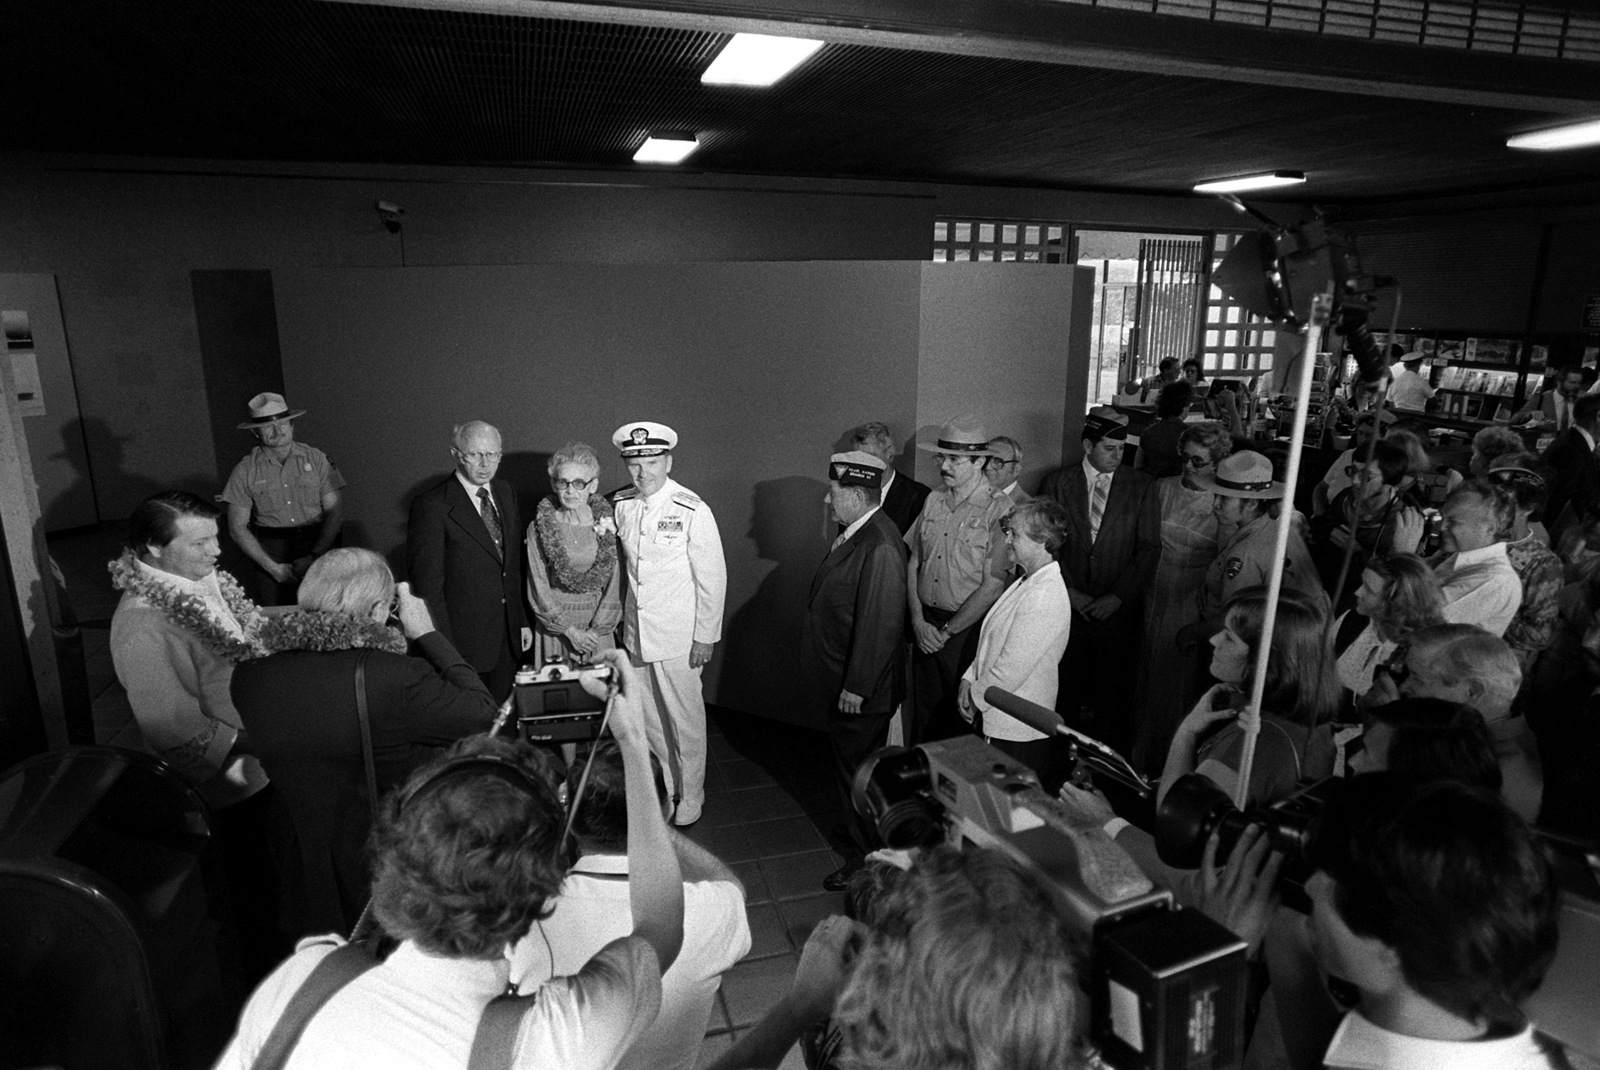 Joseph and Edith Susnir and RADM Stanley J. Anderson, commander, Naval Base, Pearl Harbor, prepare to cut the ribbon during ceremonies to mark the opening of the shoreside visitors center for the new USS ARIZONA Memorial Museum